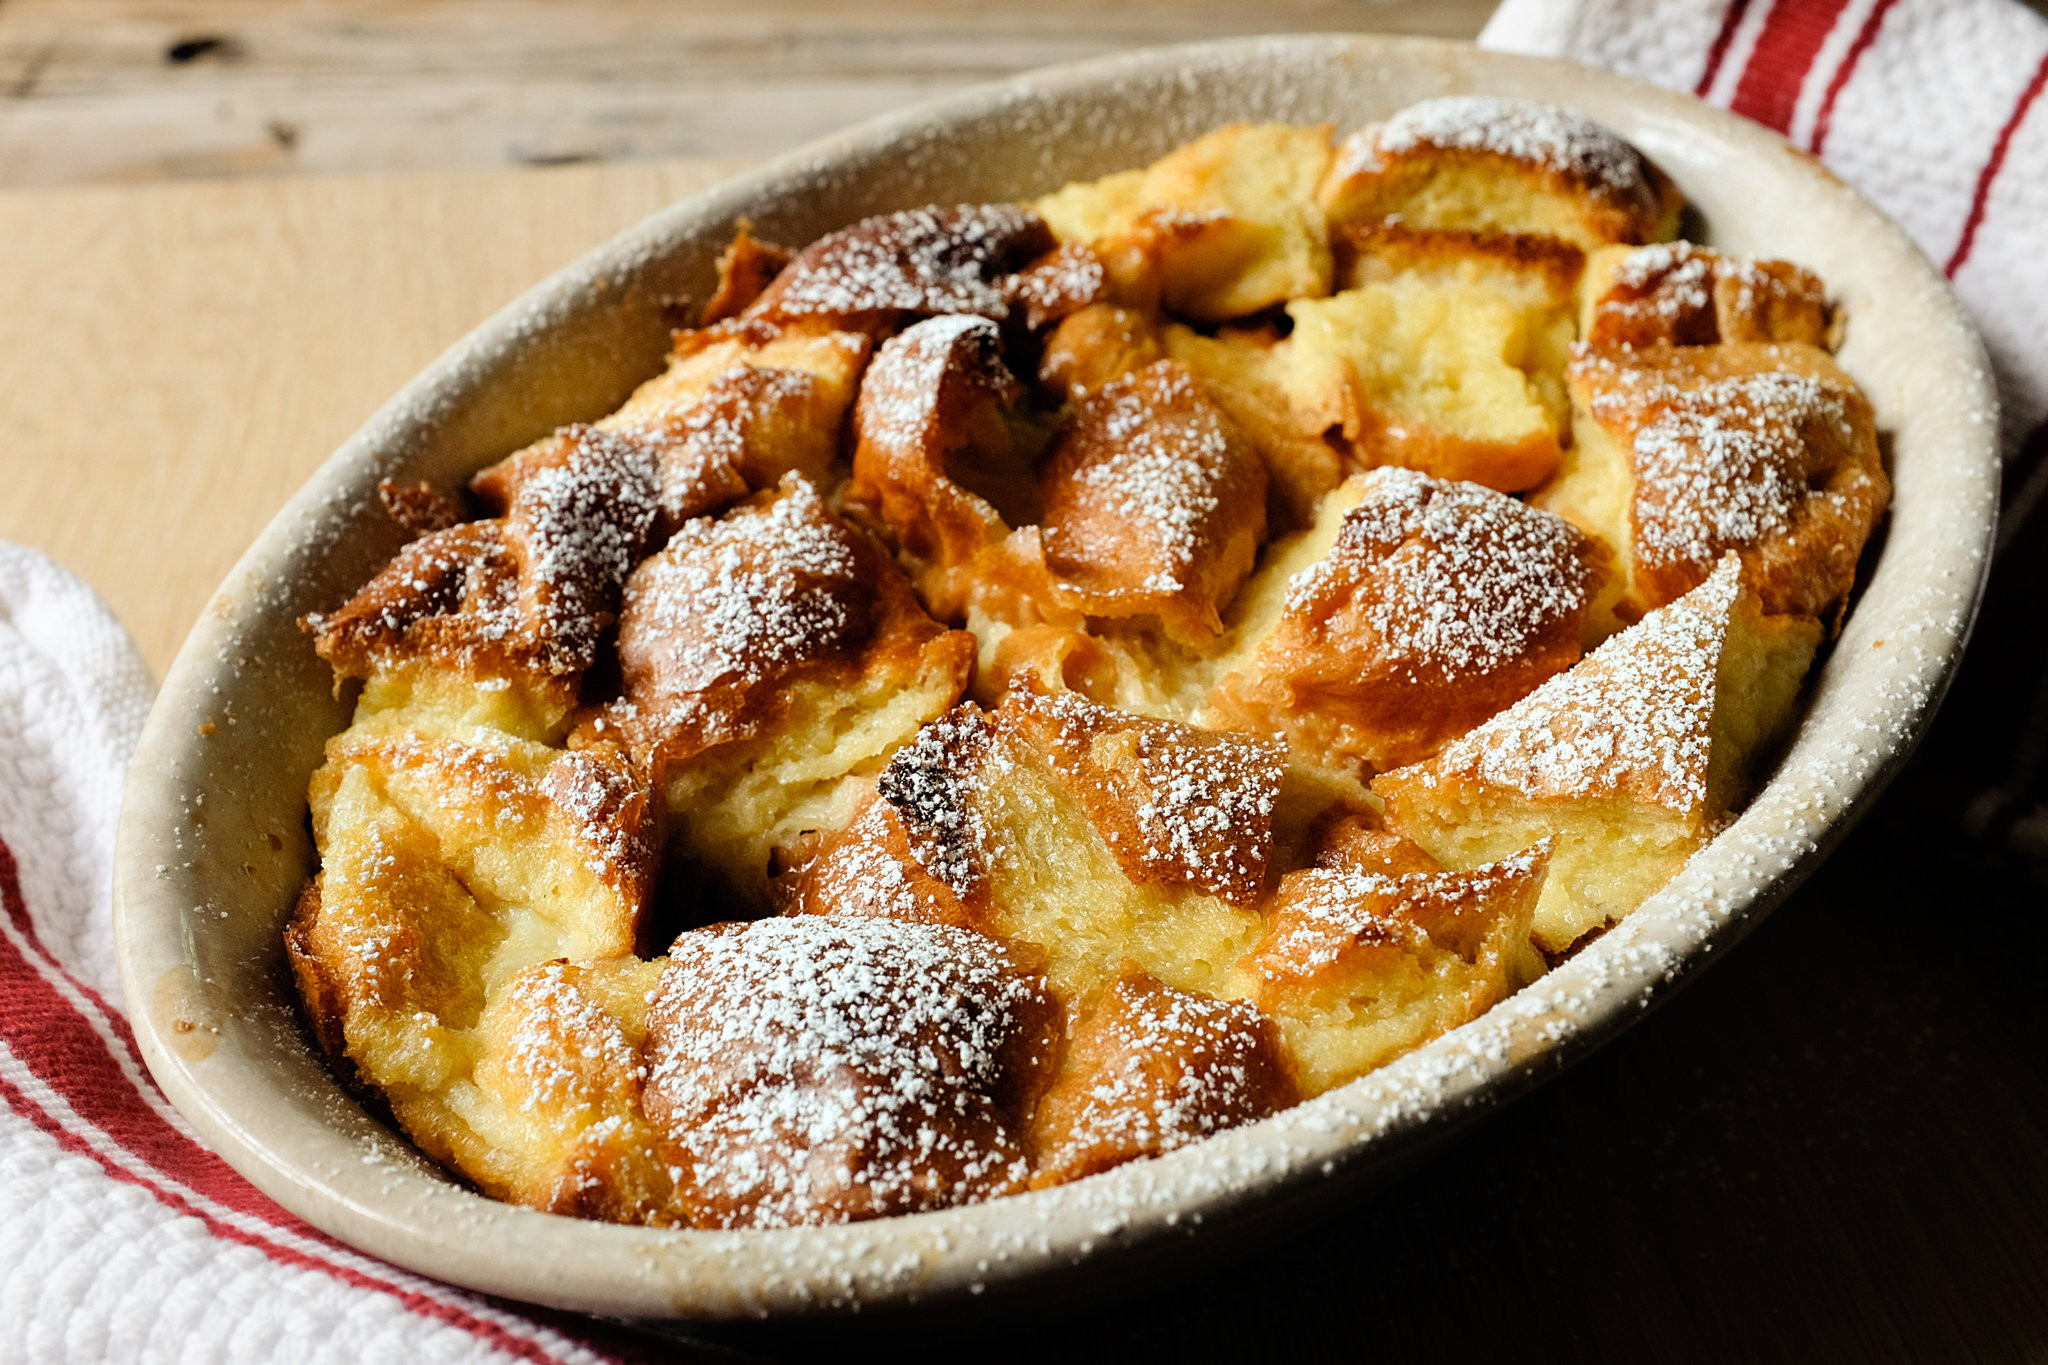 Bread Pudding Dessert  Simple Bread Pudding Recipe NYT Cooking